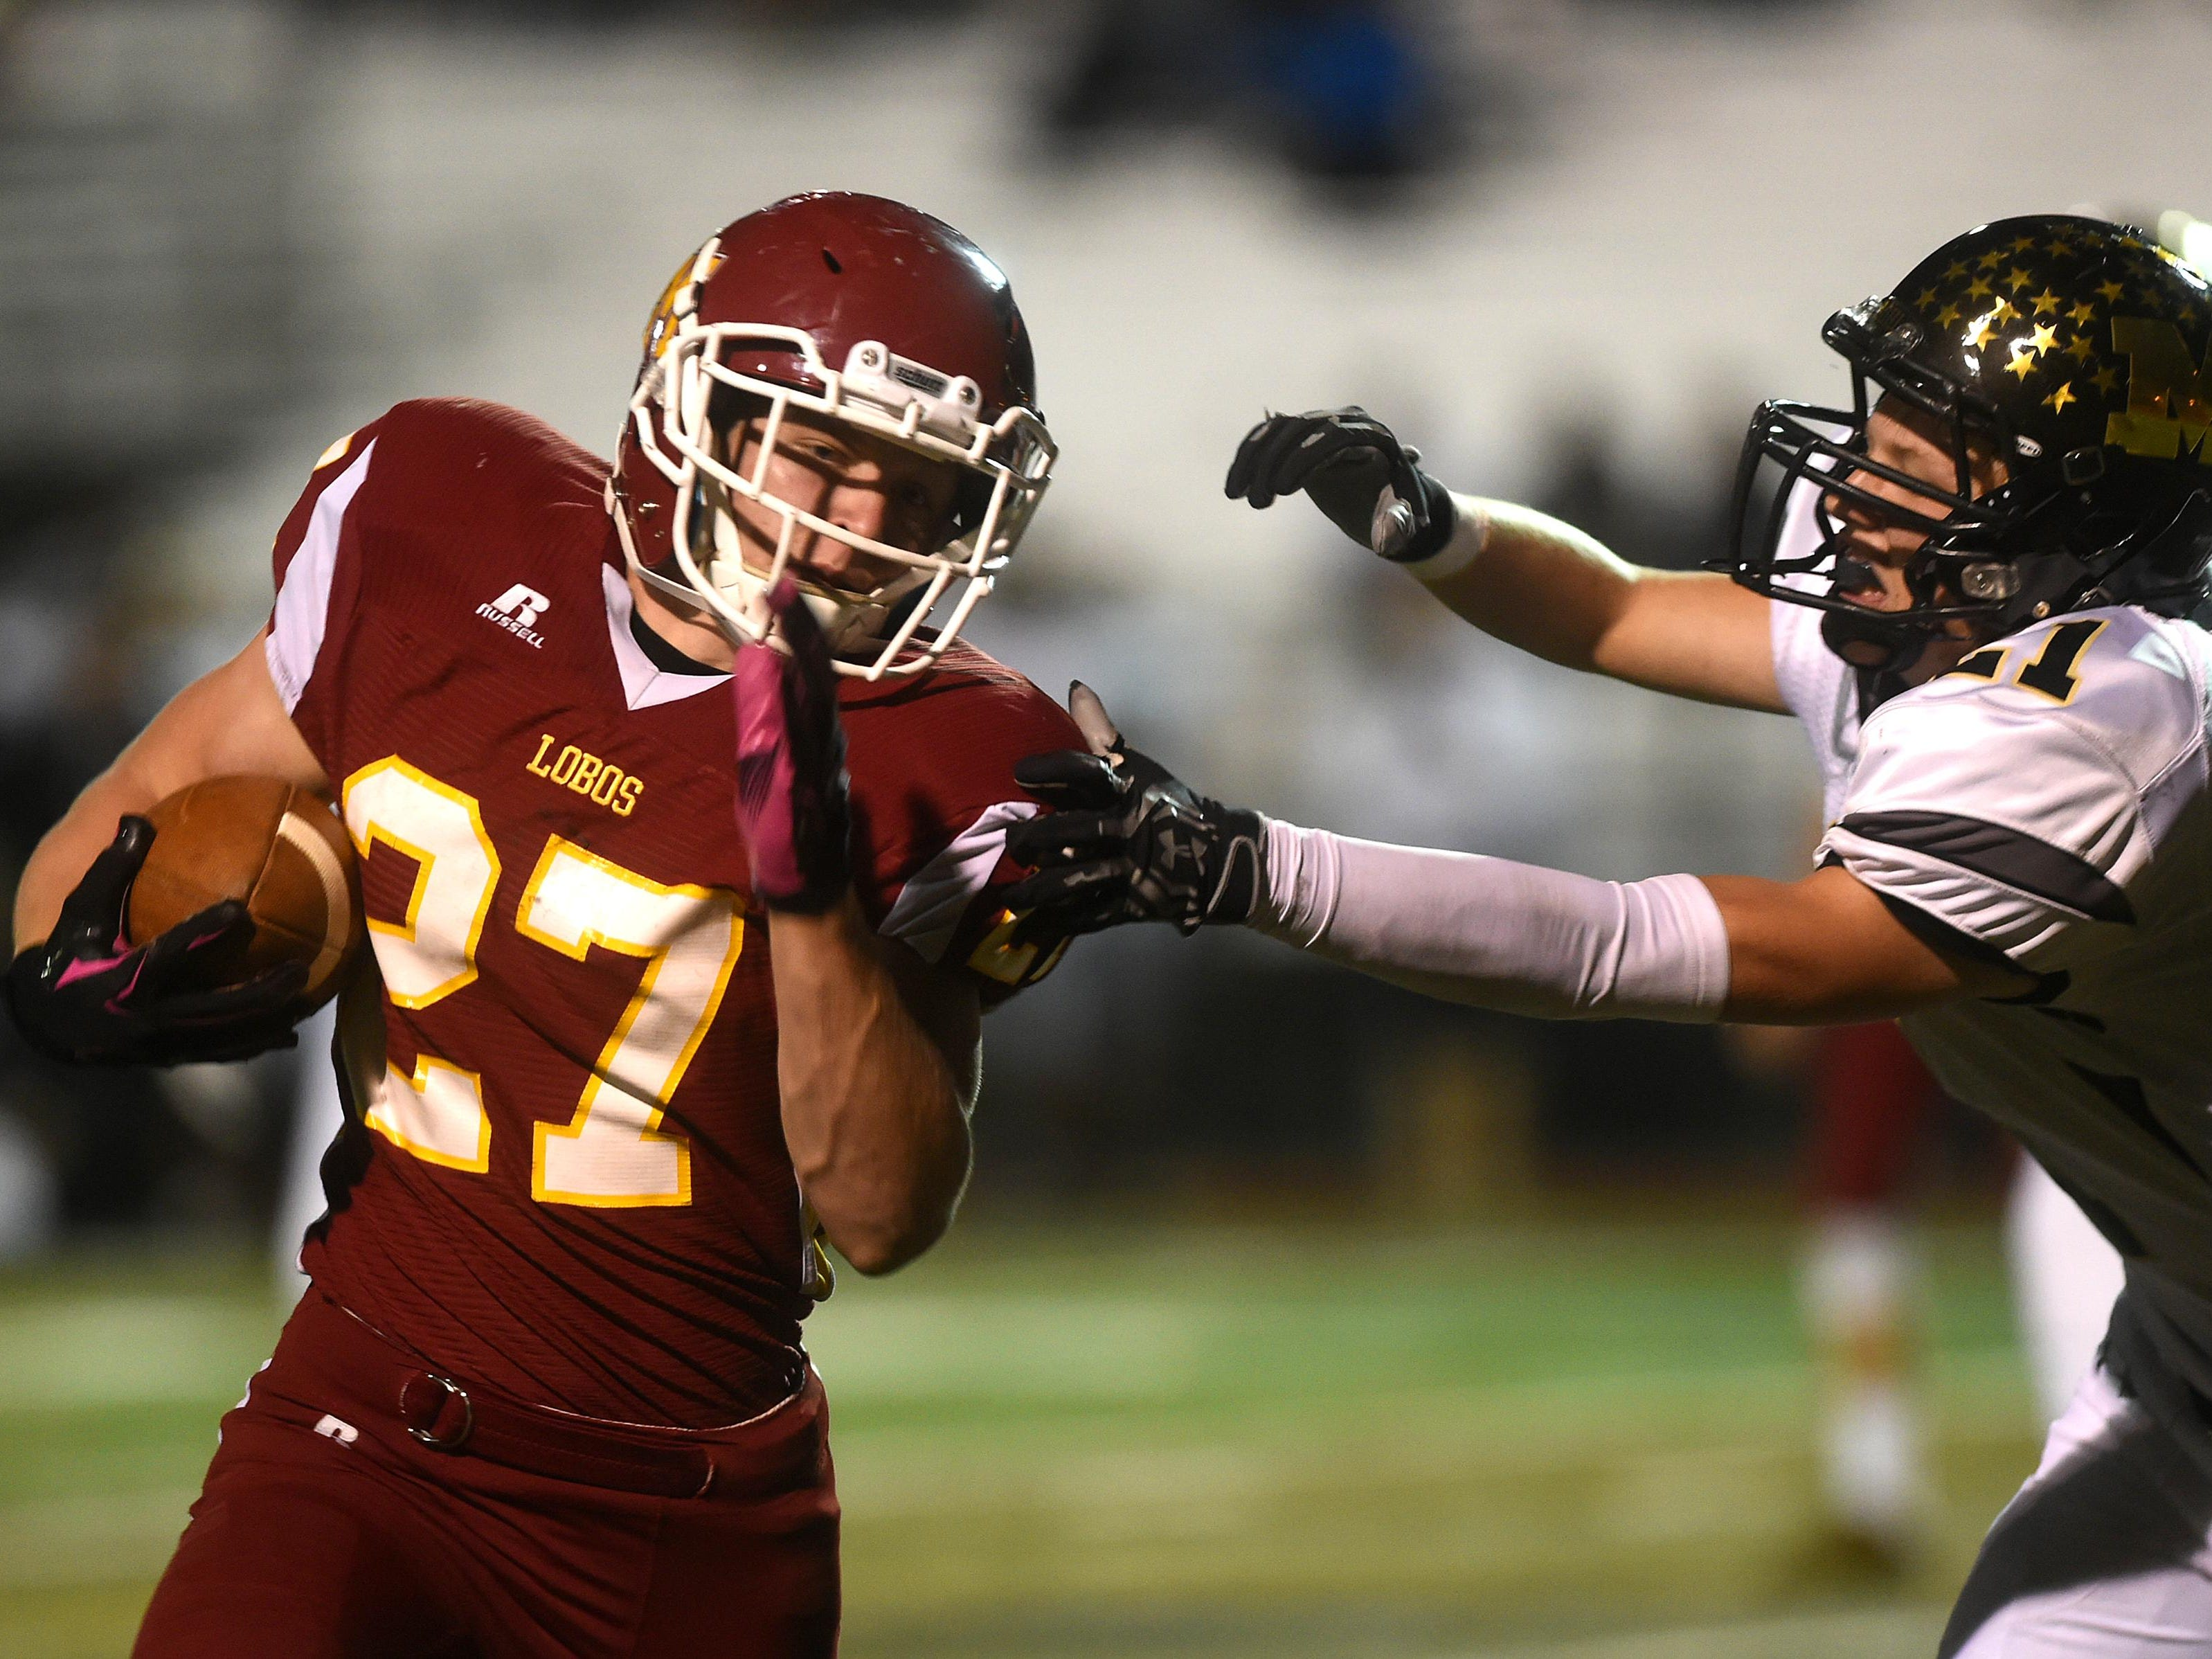 Rocky Mountain's Cade Hairgrove is second among area rushers in yards on the ground and first in touchdowns.